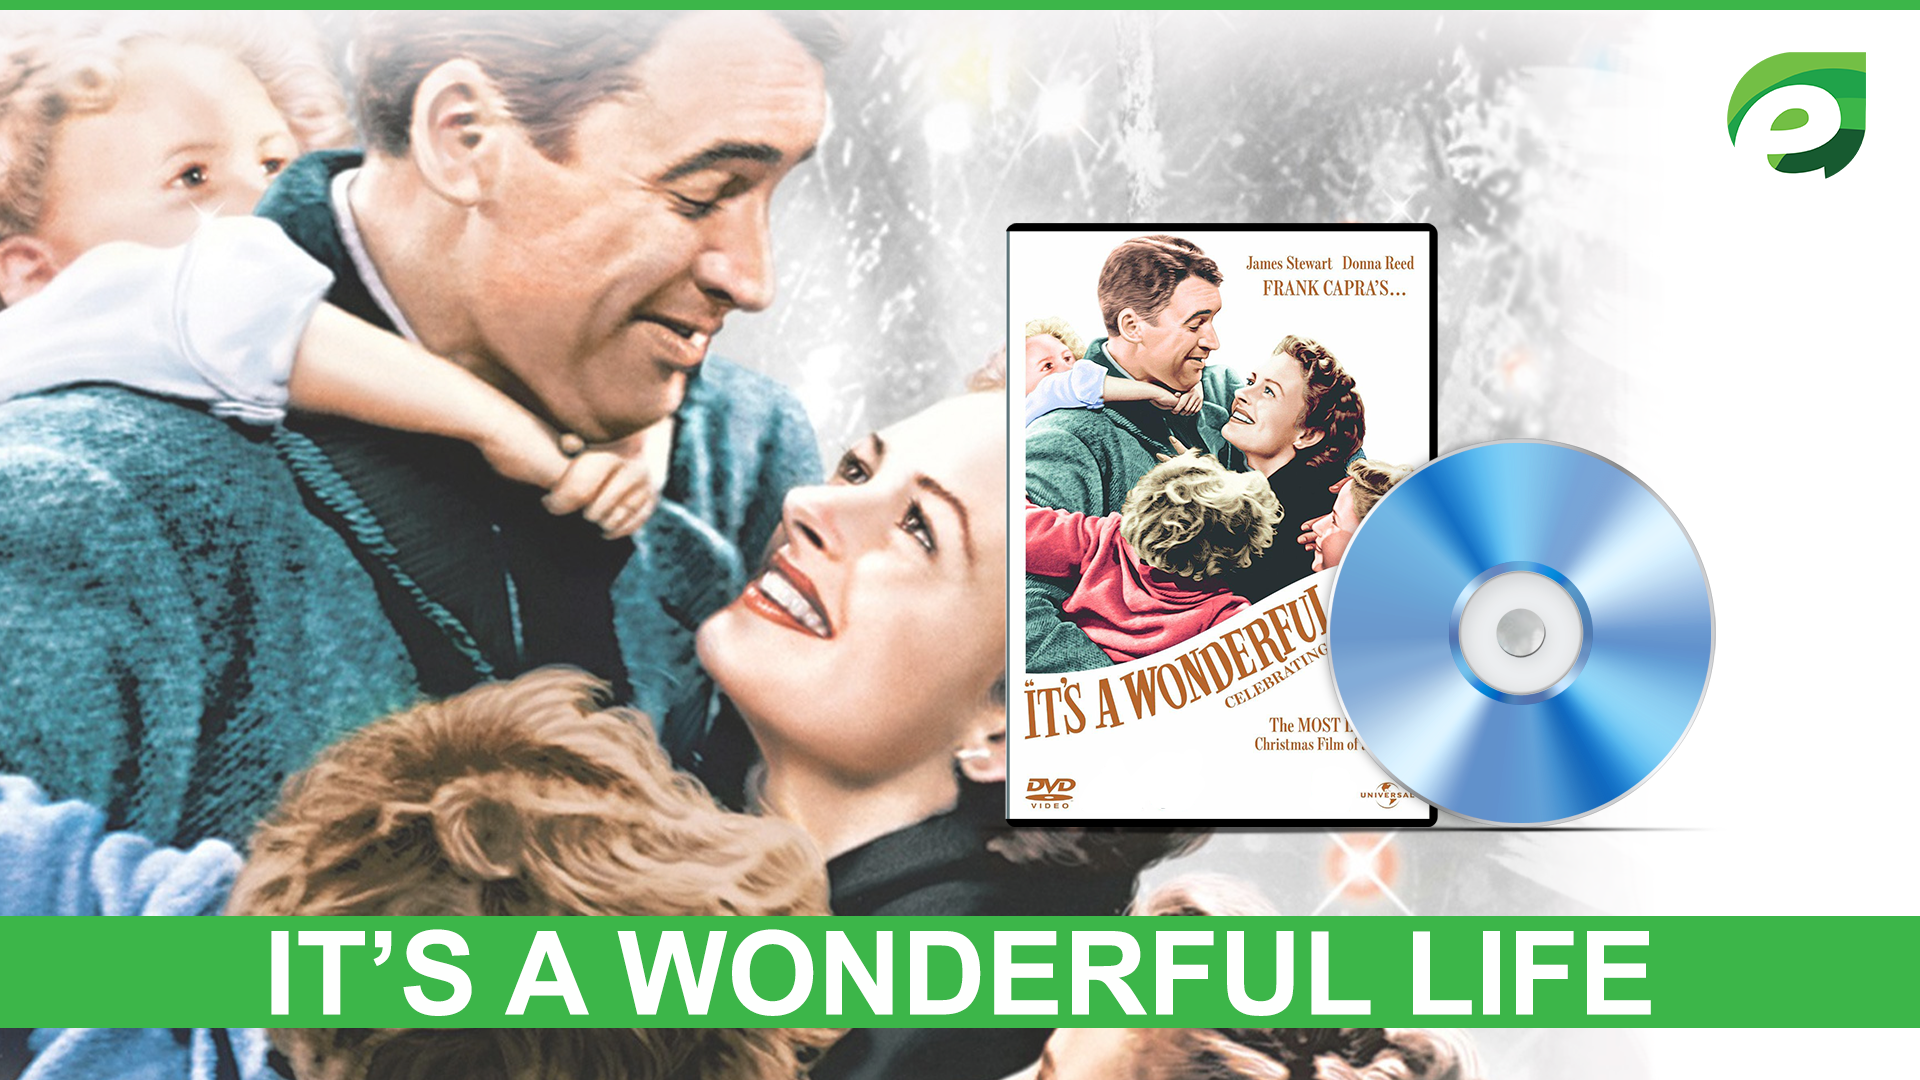 true story based movies - Its a wonderful life